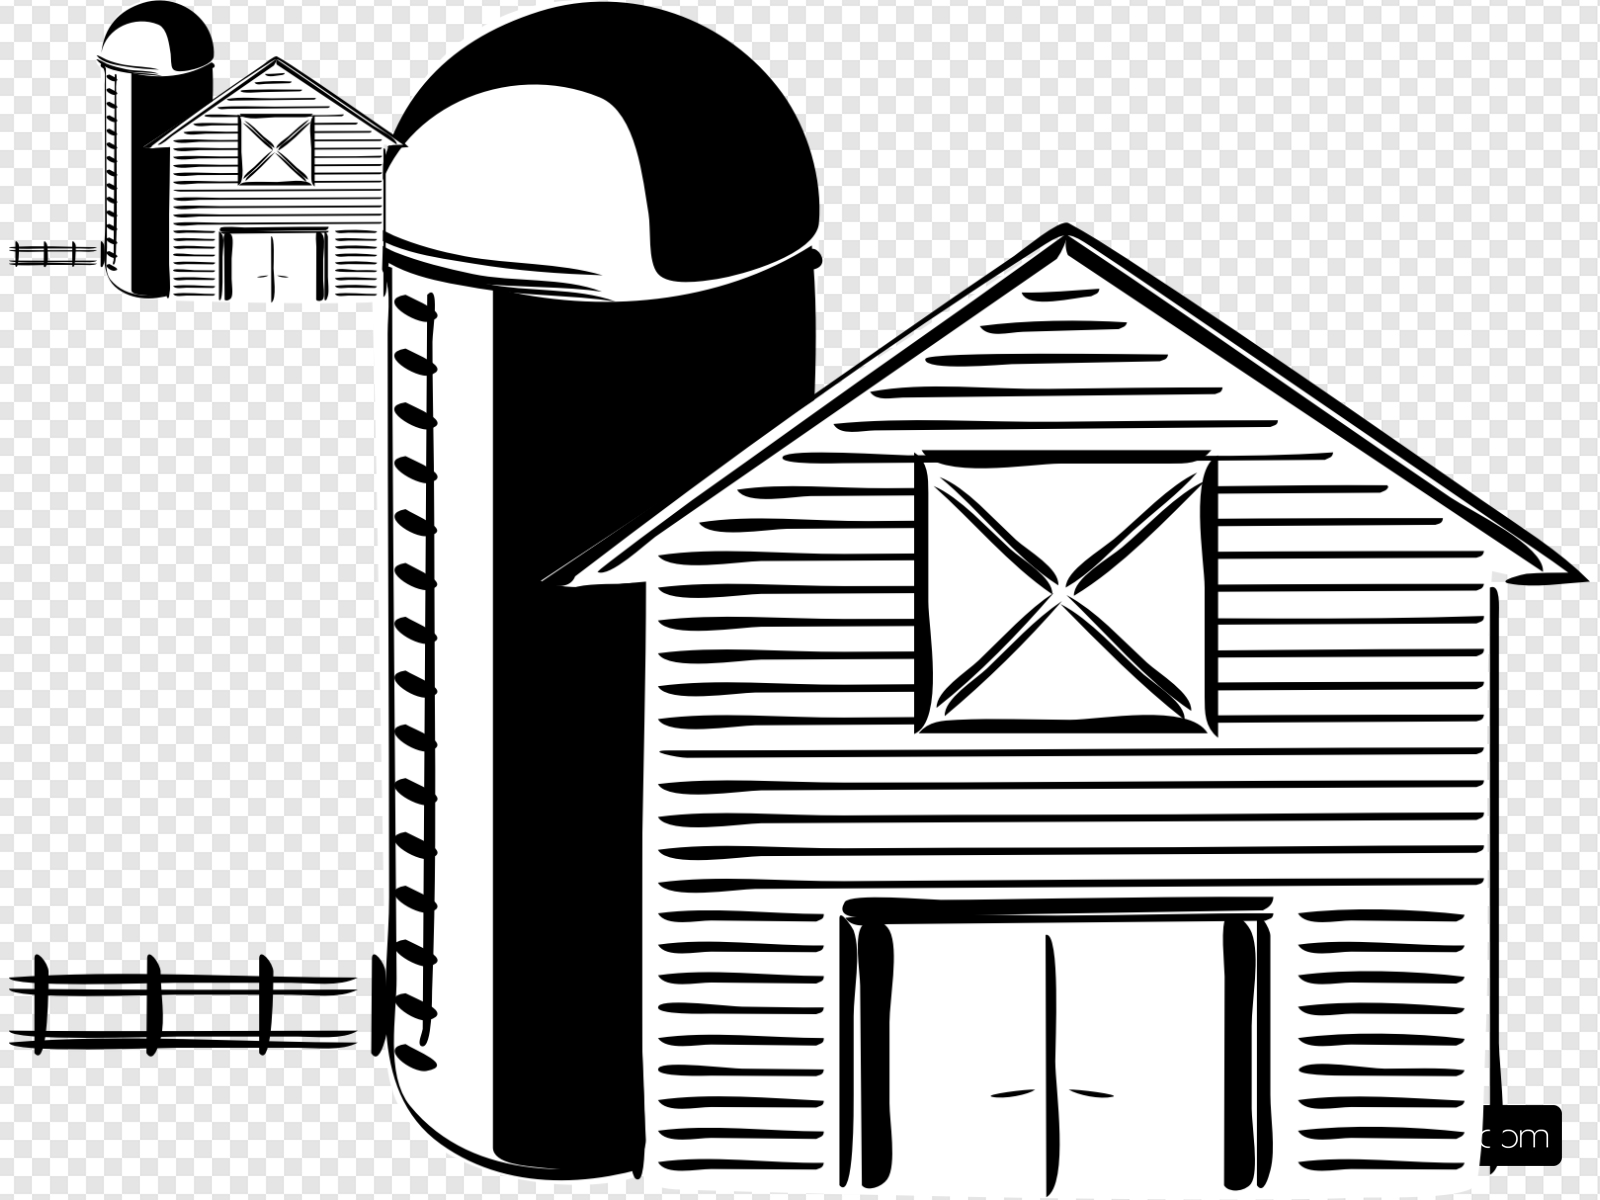 Wide barn clipart clip art library download Barn And Silo Clip art, Icon and SVG - SVG Clipart clip art library download